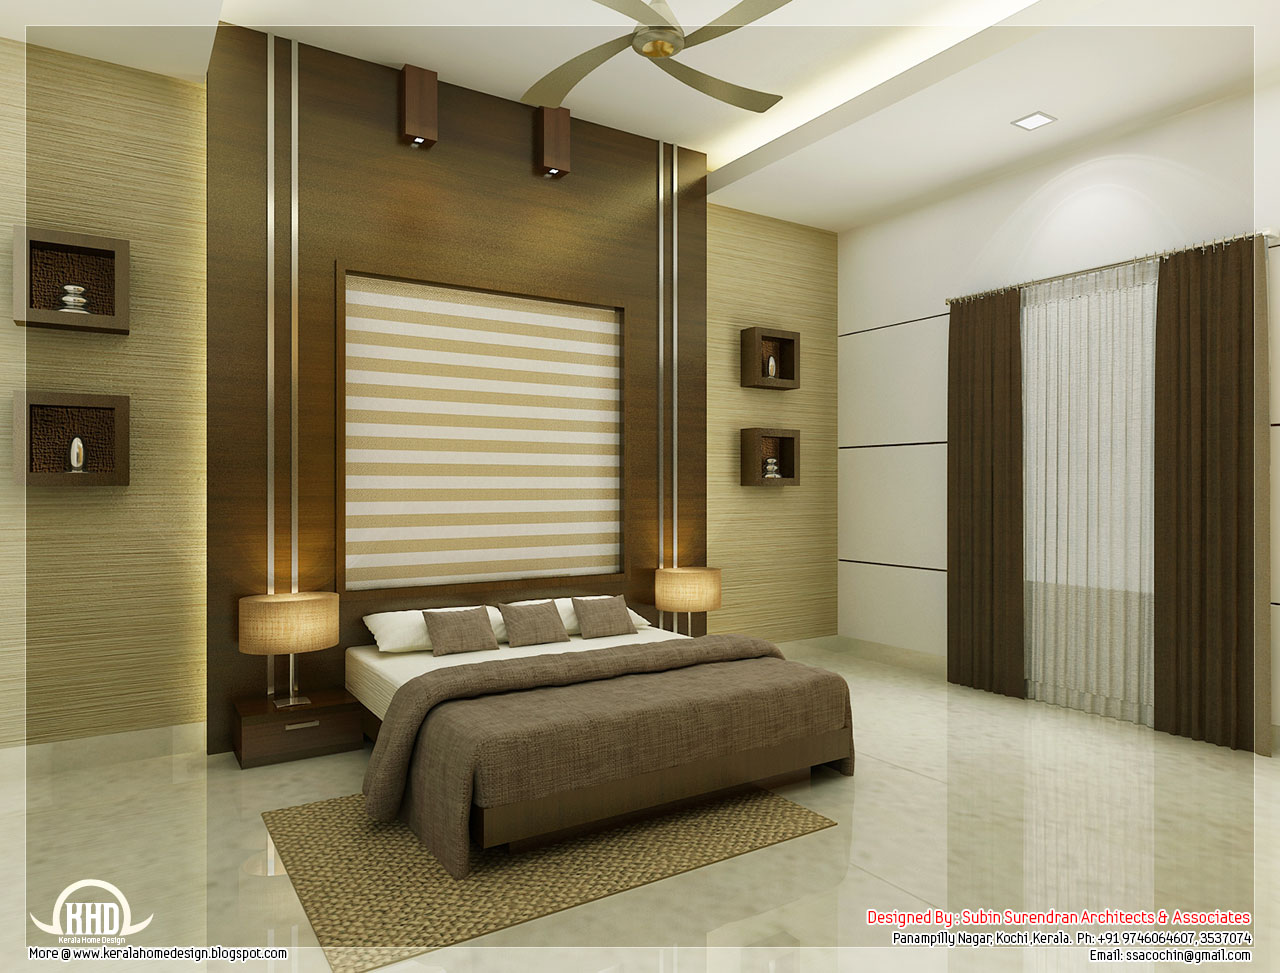 Beautiful bedroom interior designs kerala home design for Interior designs in kerala